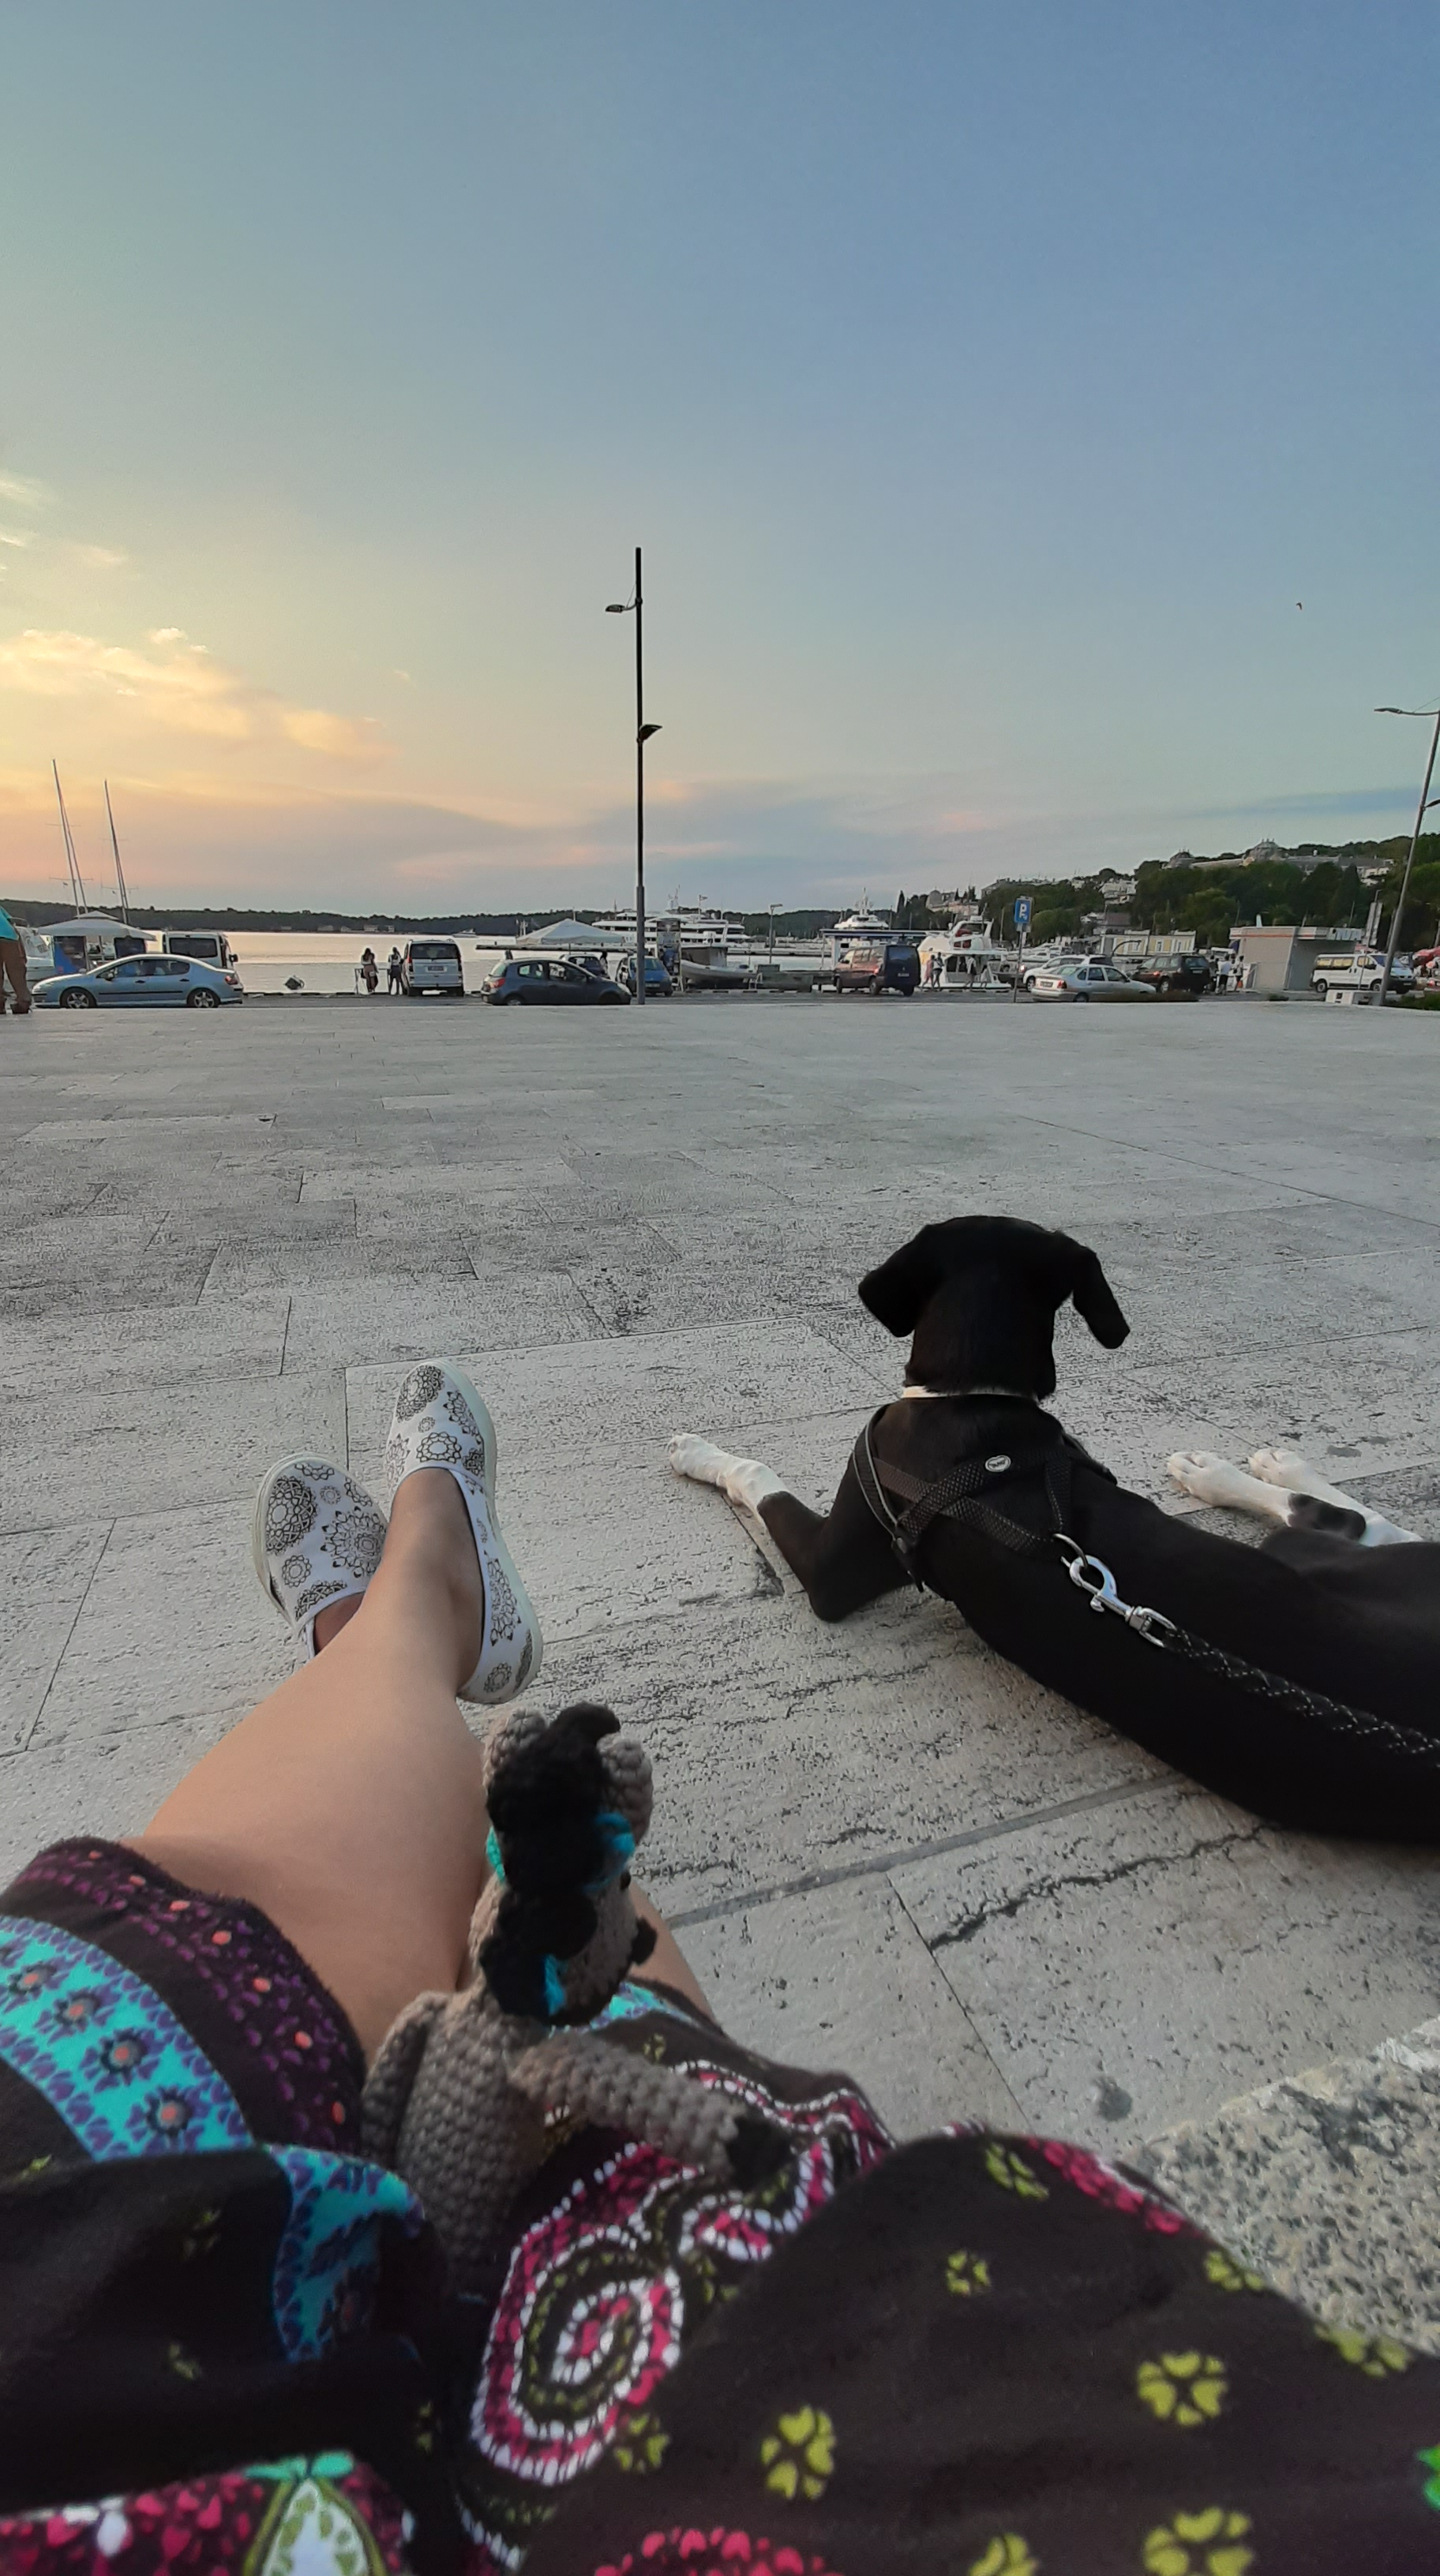 Our mascot and a dog sitting on the promenade in Pula.